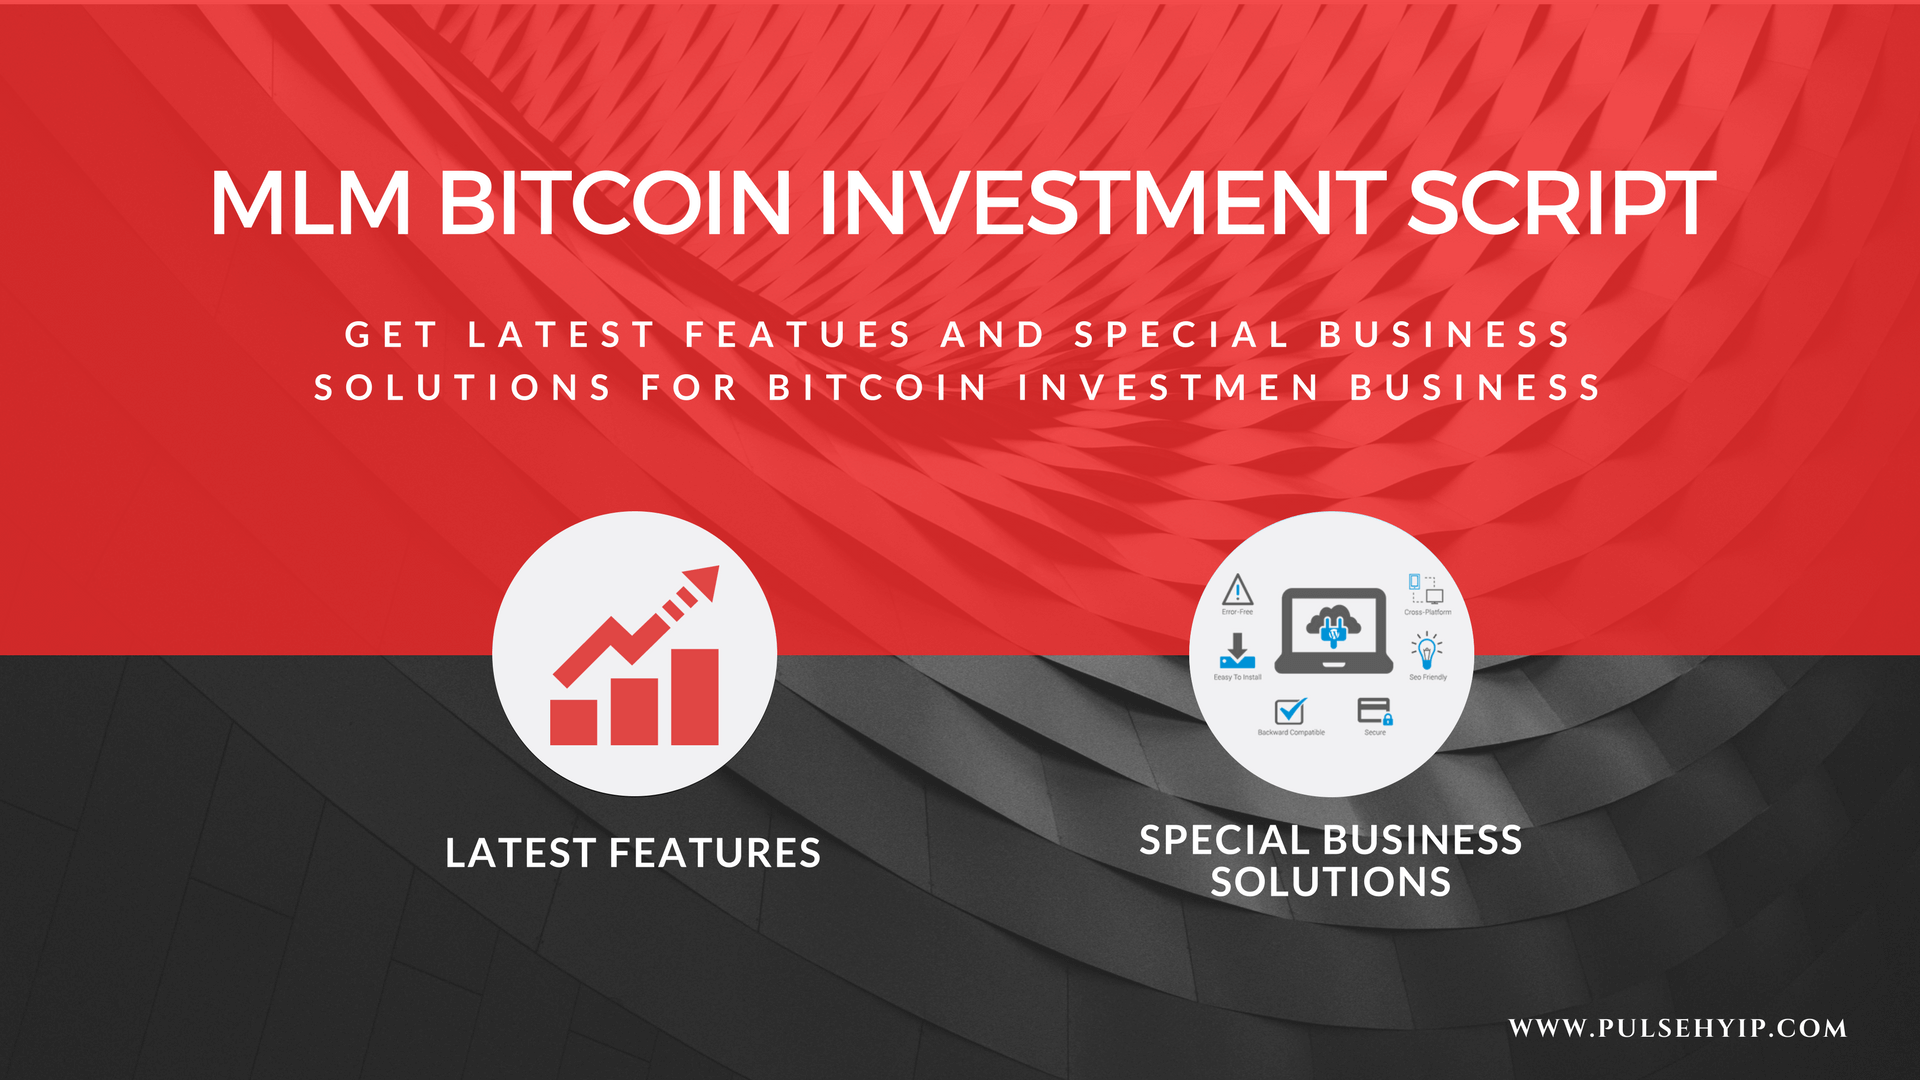 Special features and business solutions of MLM bitcoin investment script software